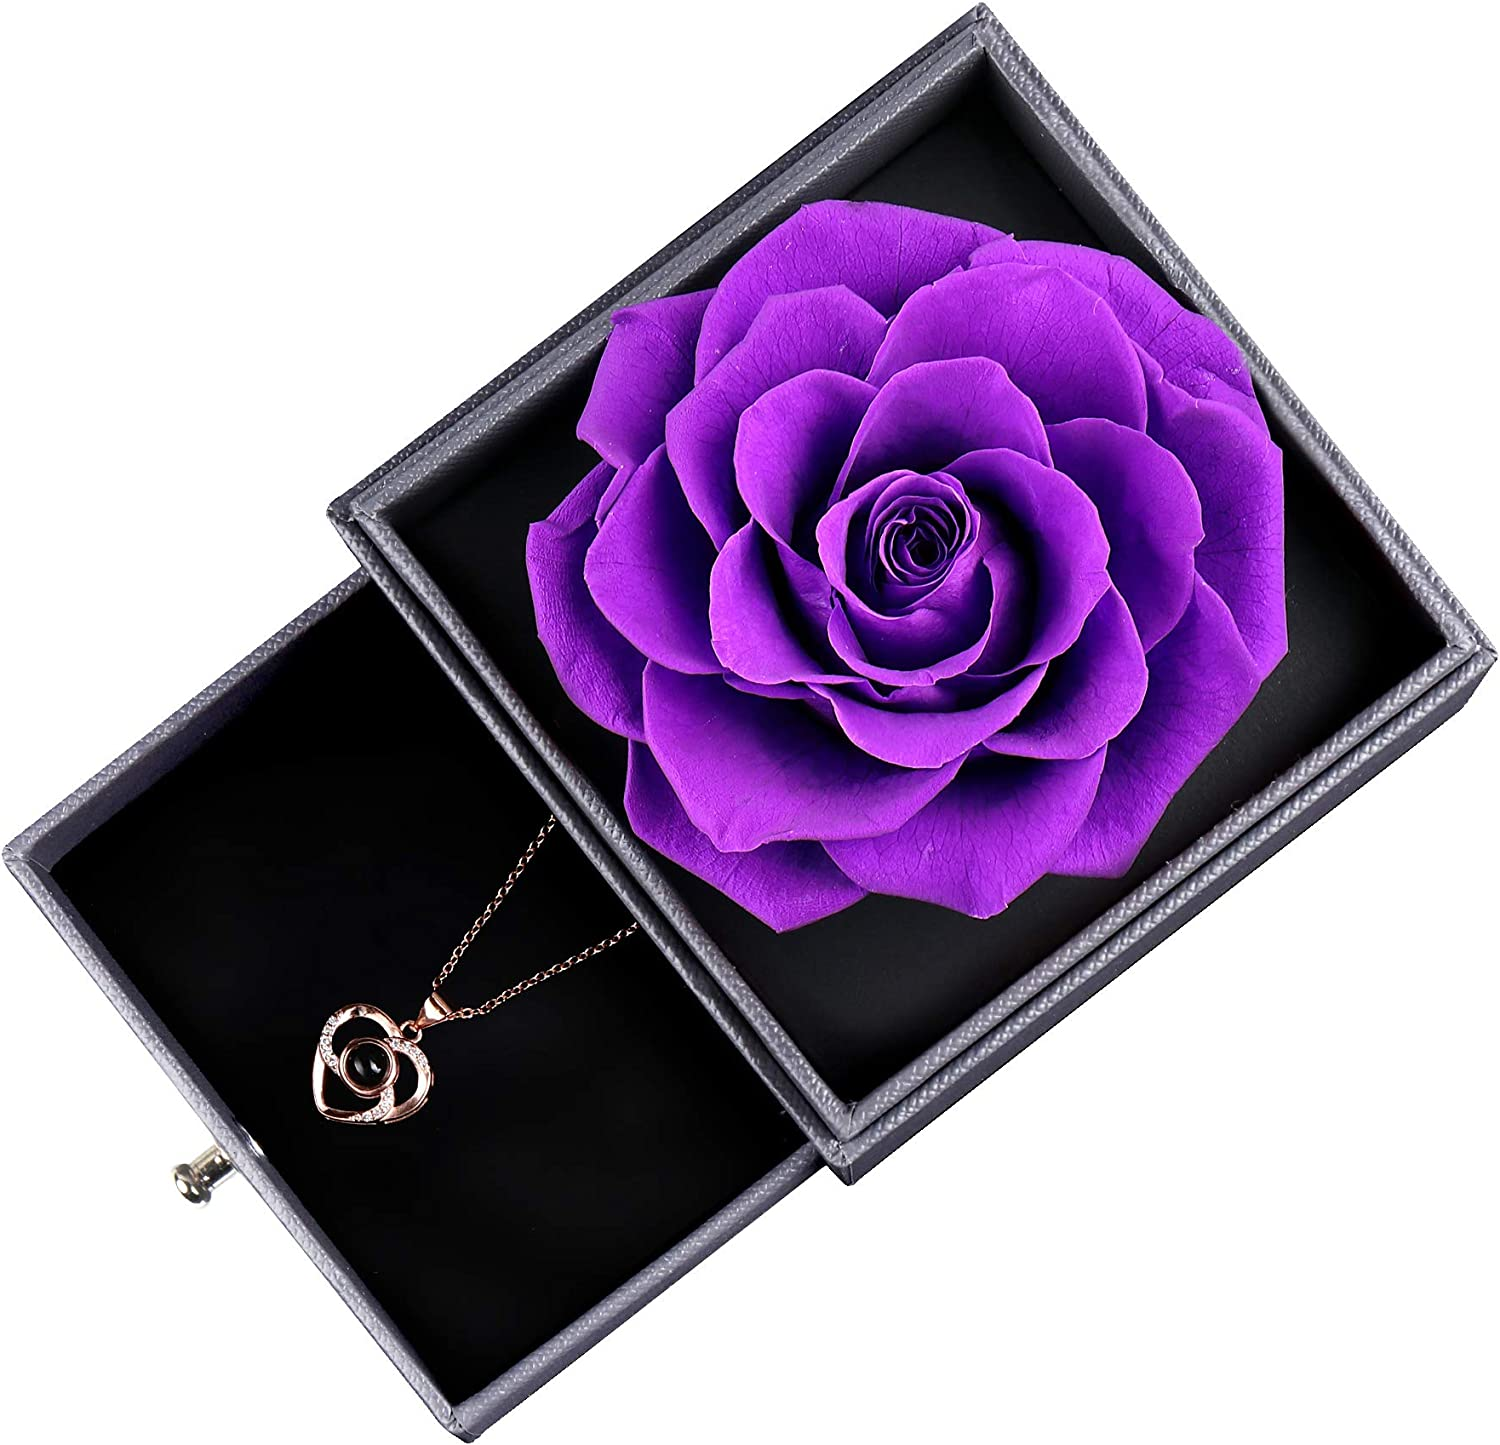 Black Handmade Fresh Rose Gift for Her on Birthday,Christmas,Mothers Day,Valentines Day Eternal Rose Gift Box with Rose Necklace Real Preserved Rose